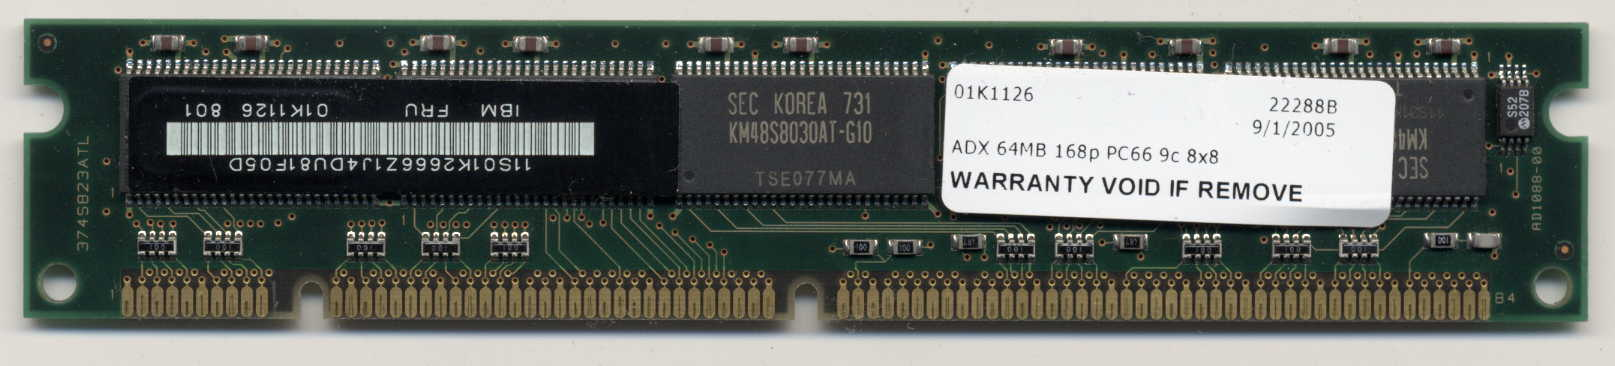 IBM  64MB 168p PC66 9c 8x8 ECC SDRAM DIMM